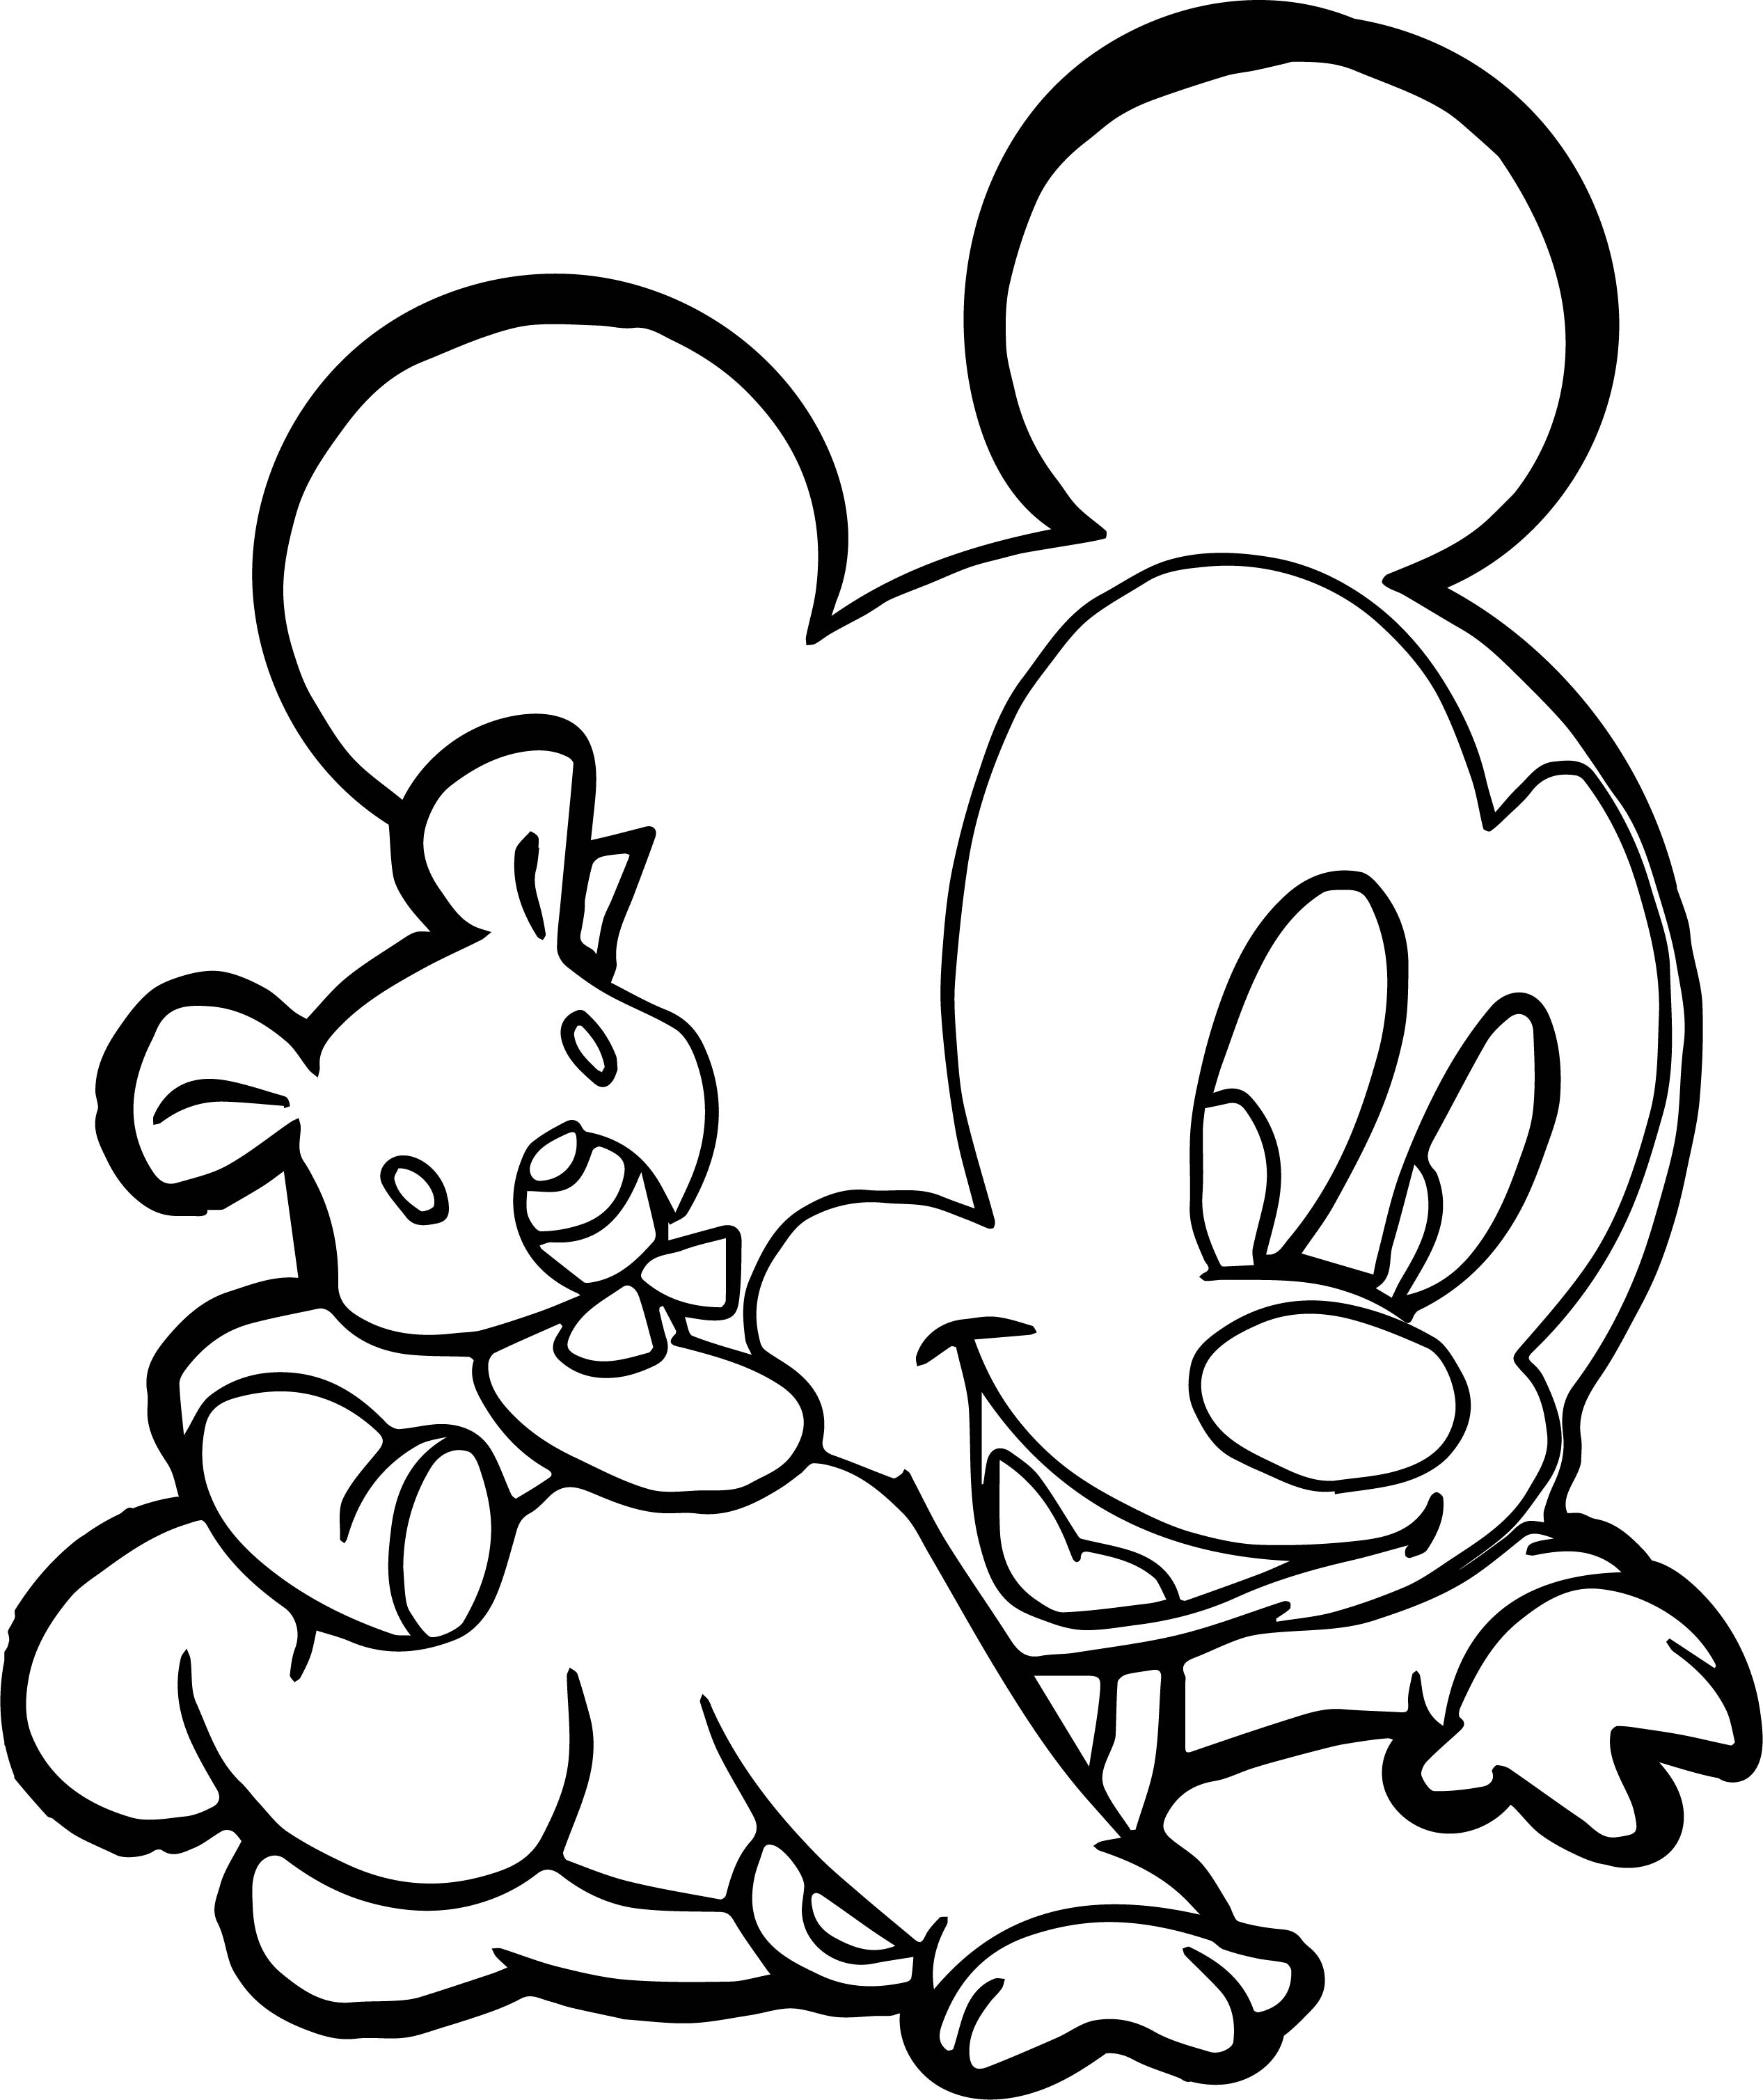 Baby Mickey Carrying Bear Coloring Page